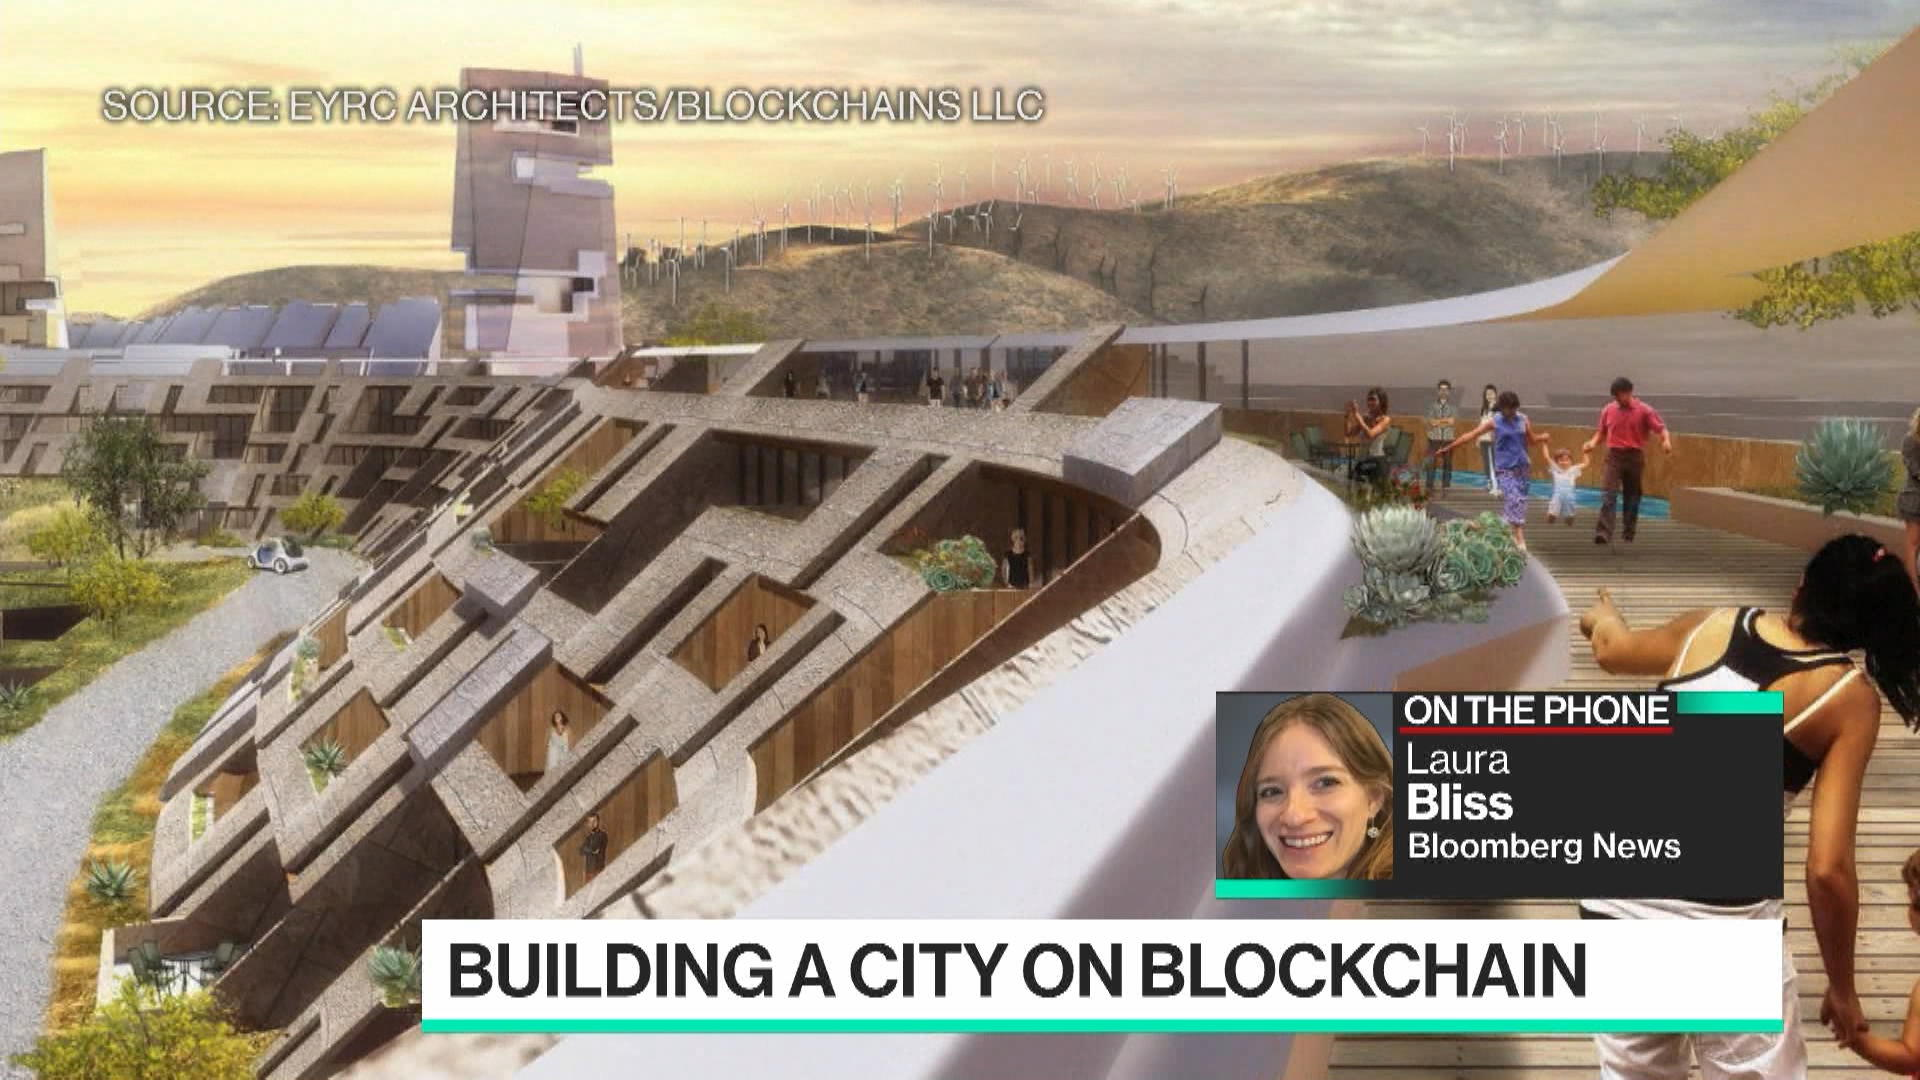 Building a City on Blockchain